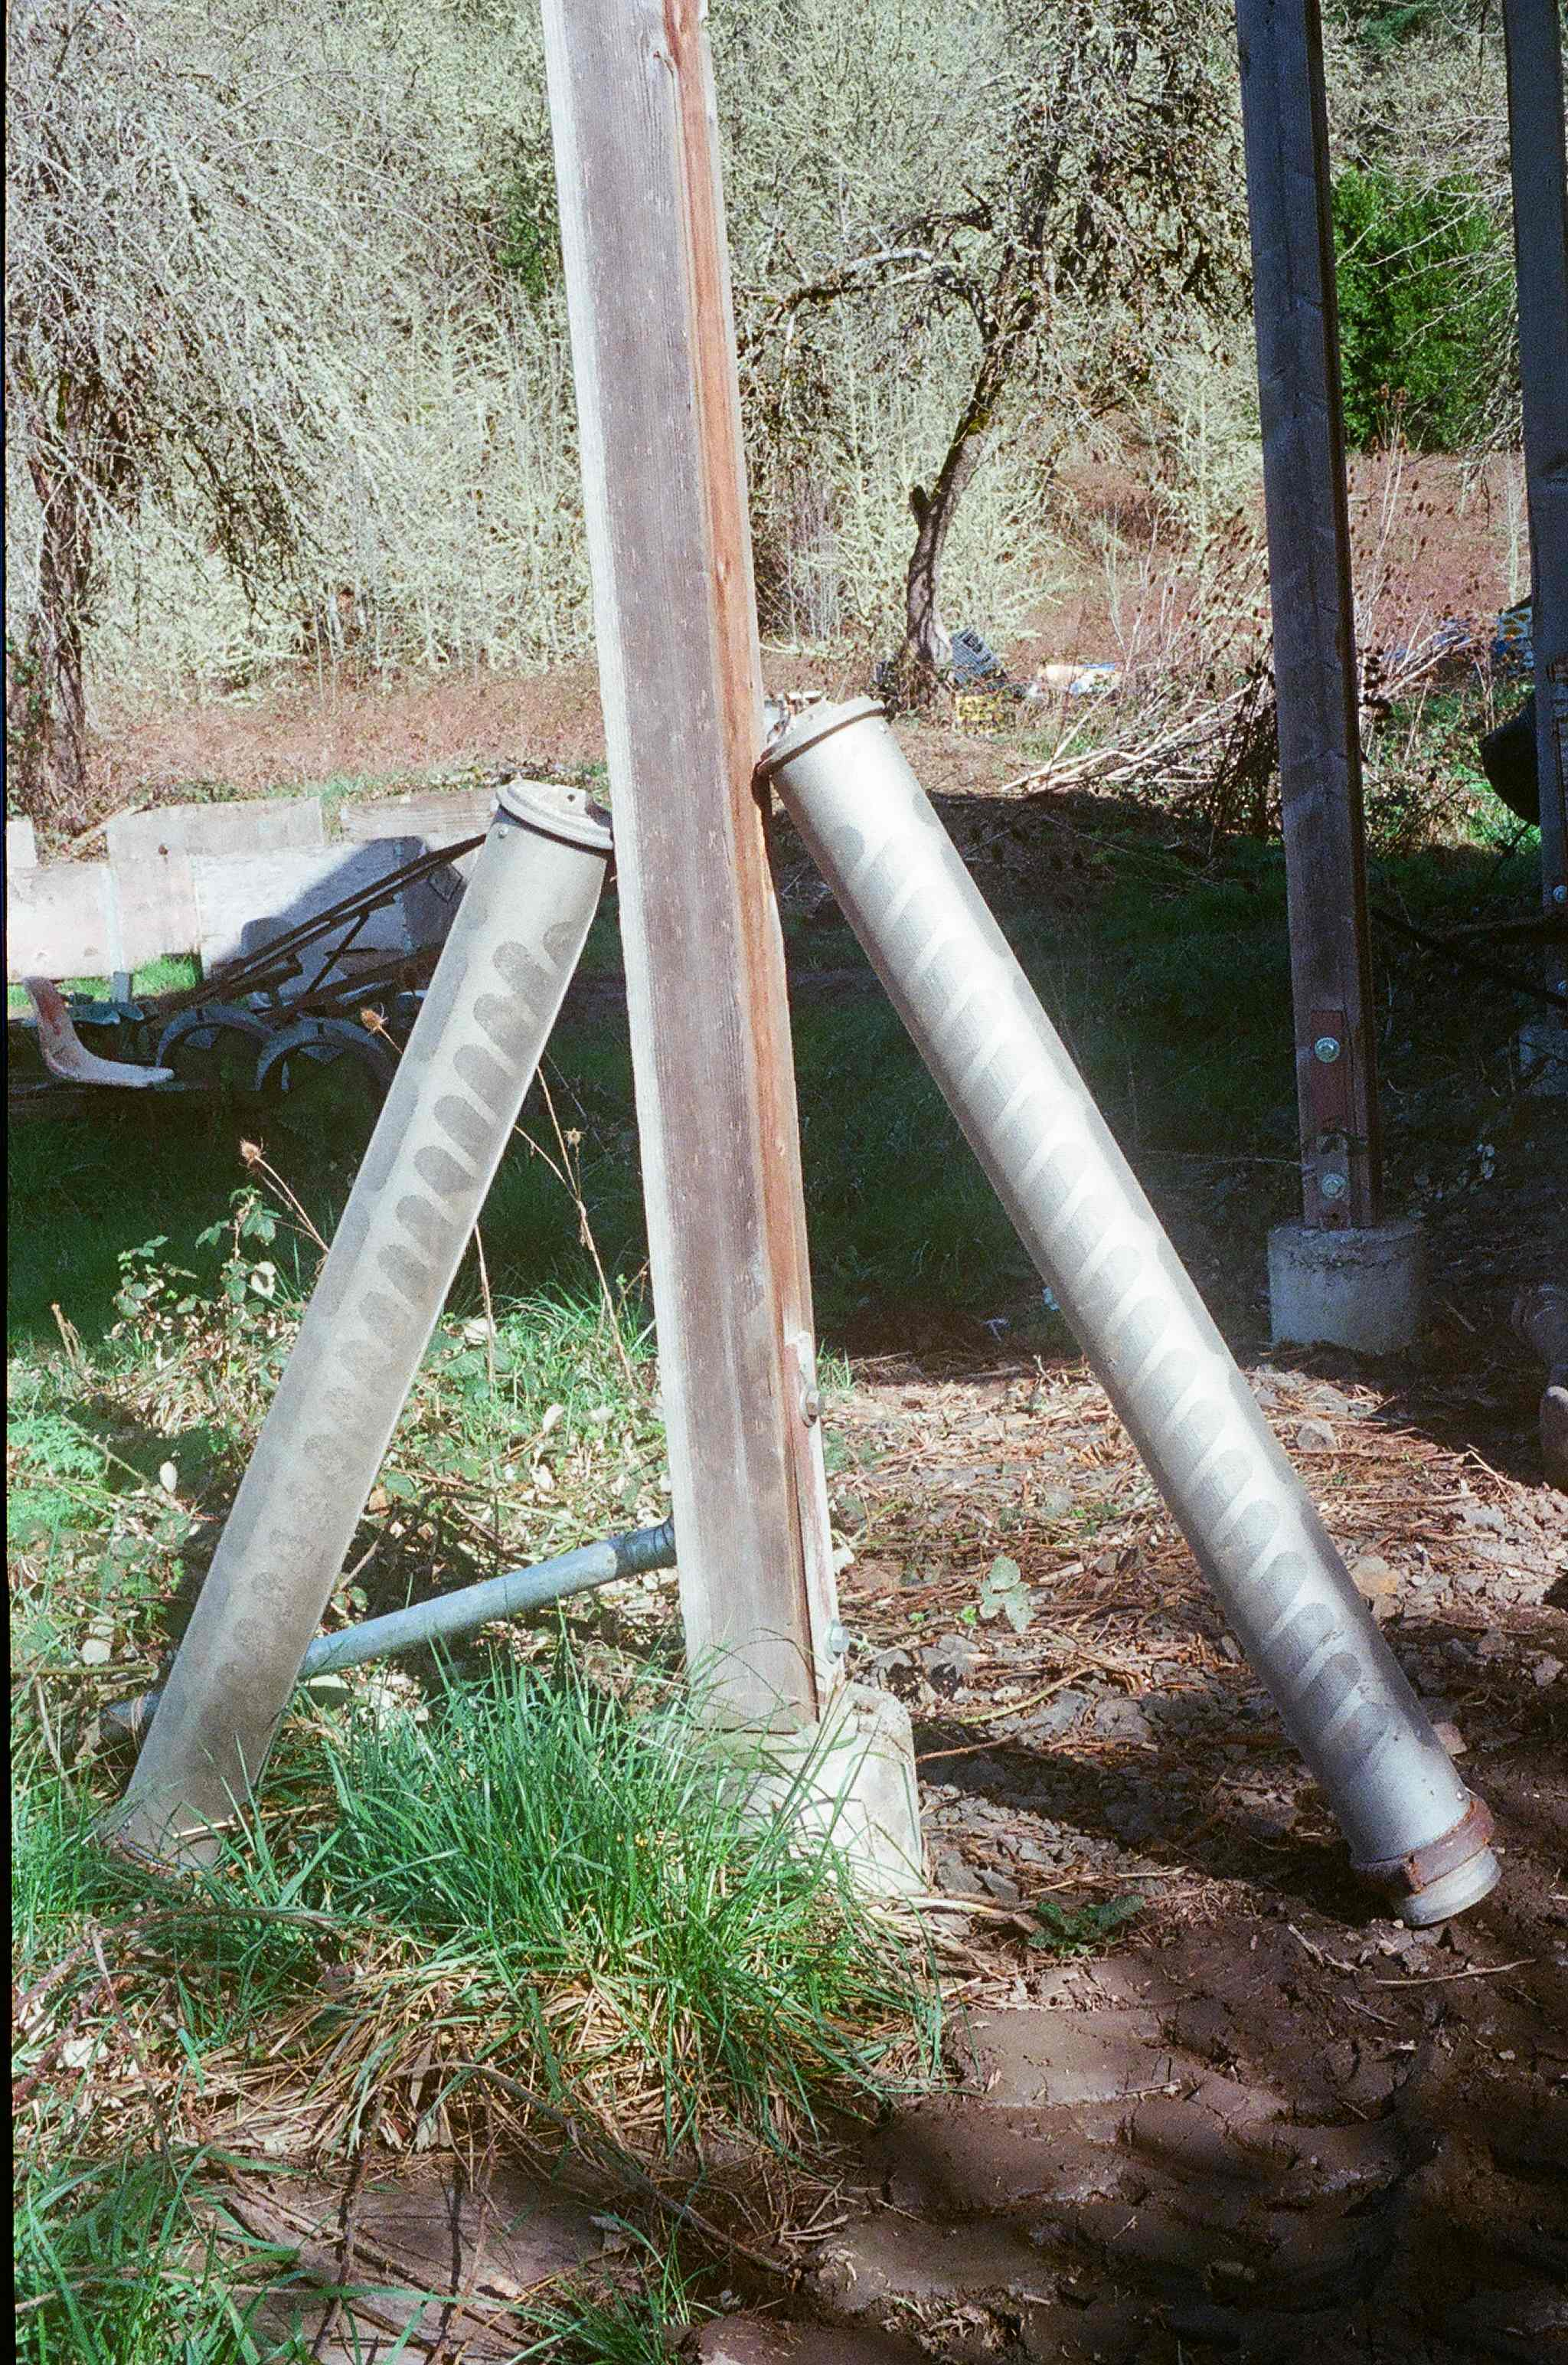 The two cylinders leaning against the post are fish screens that we use on our irrigation pump intake to keep fish of all sizes from getting sucked into the irrigation system.